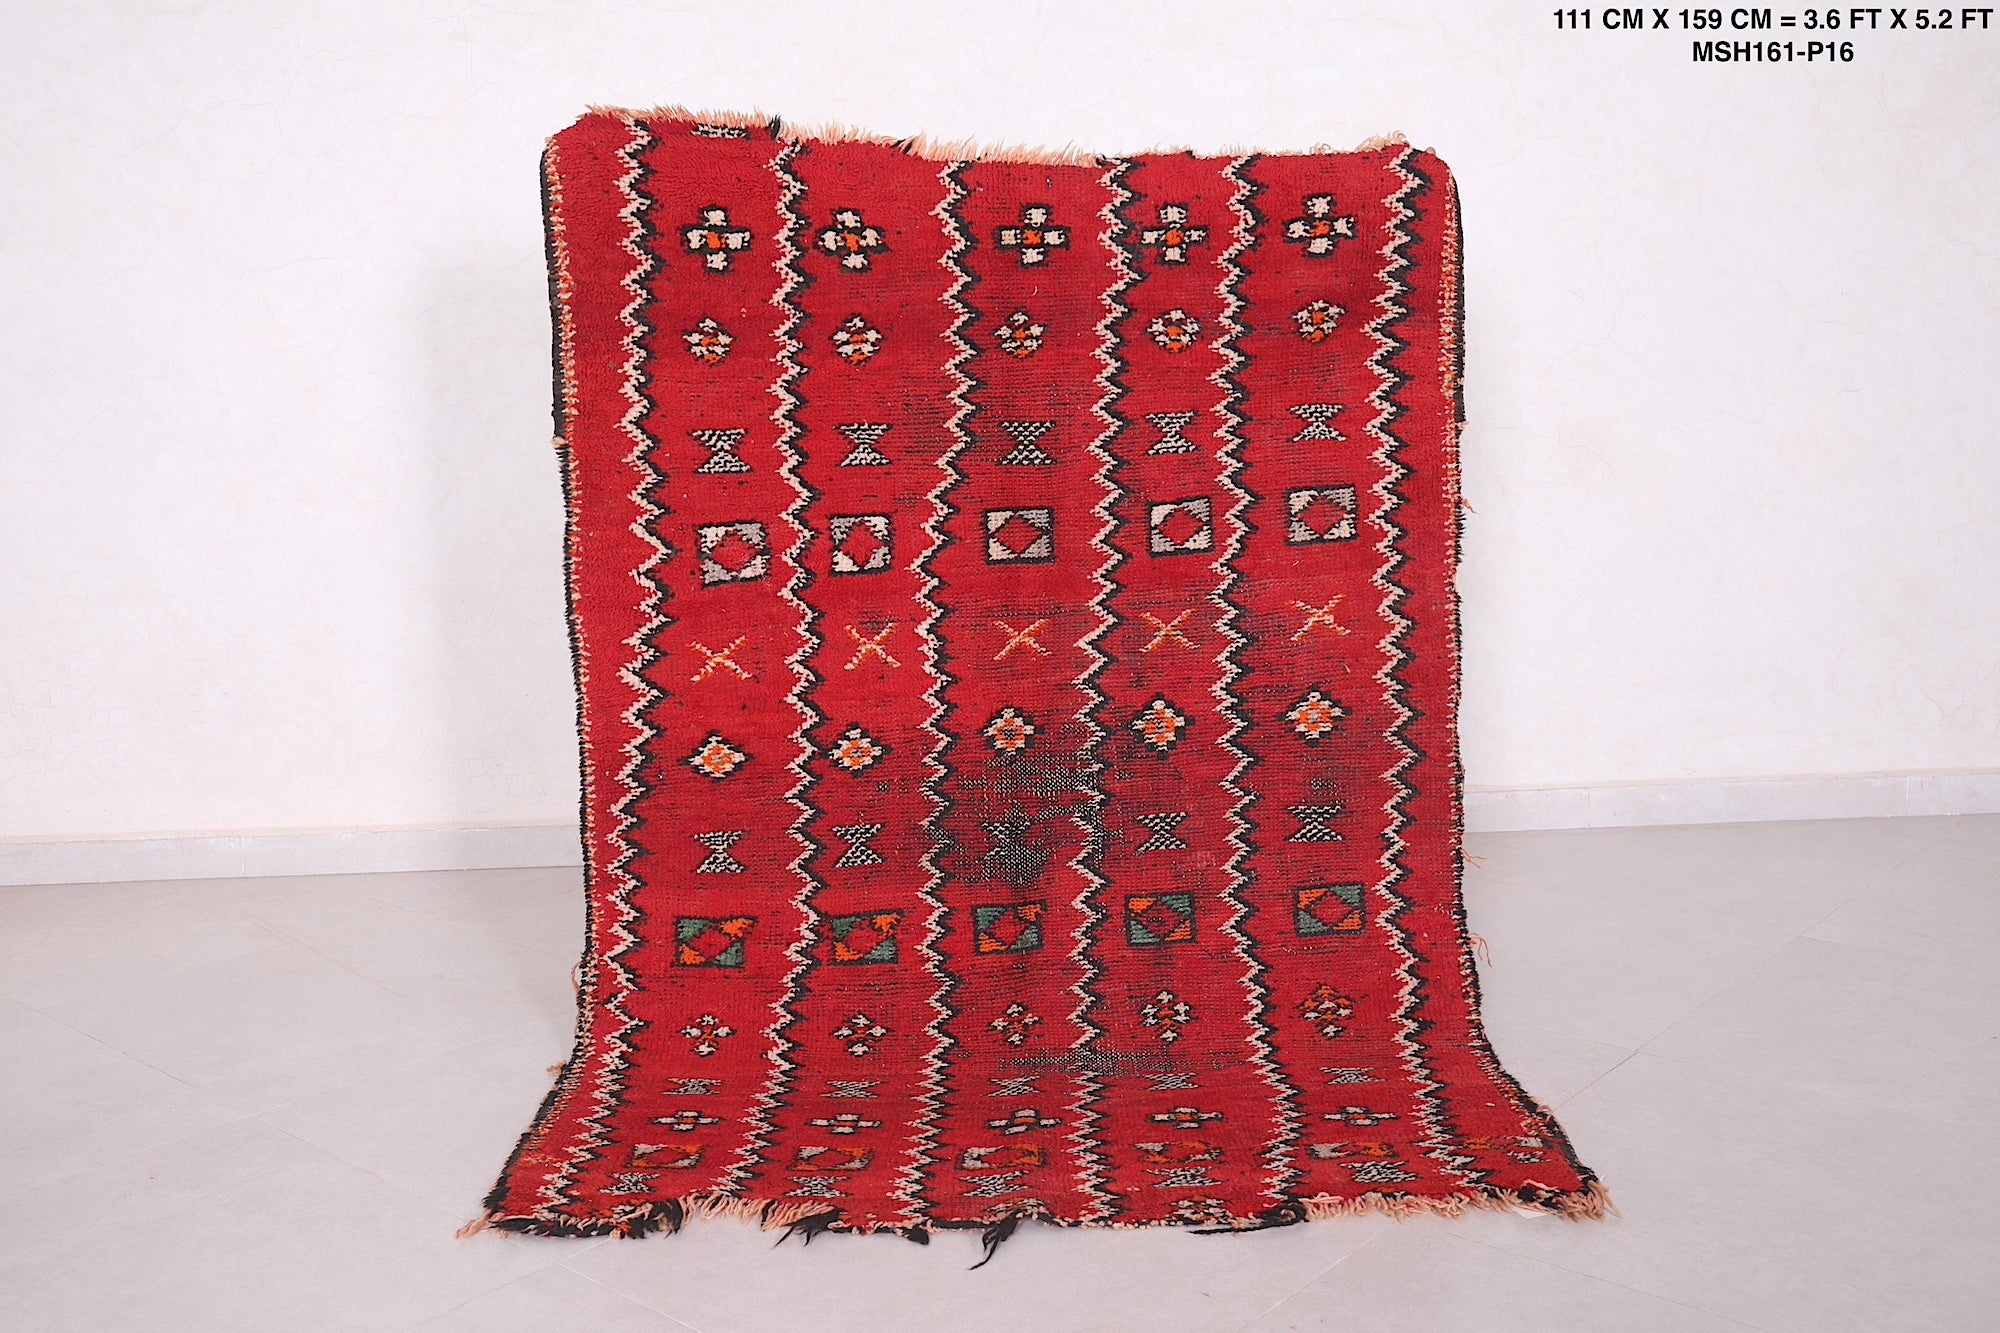 Moroccan Rug Red 3 6 Ft X 5 2 Ft Antique Azilal Carpet Boucherouite Rug